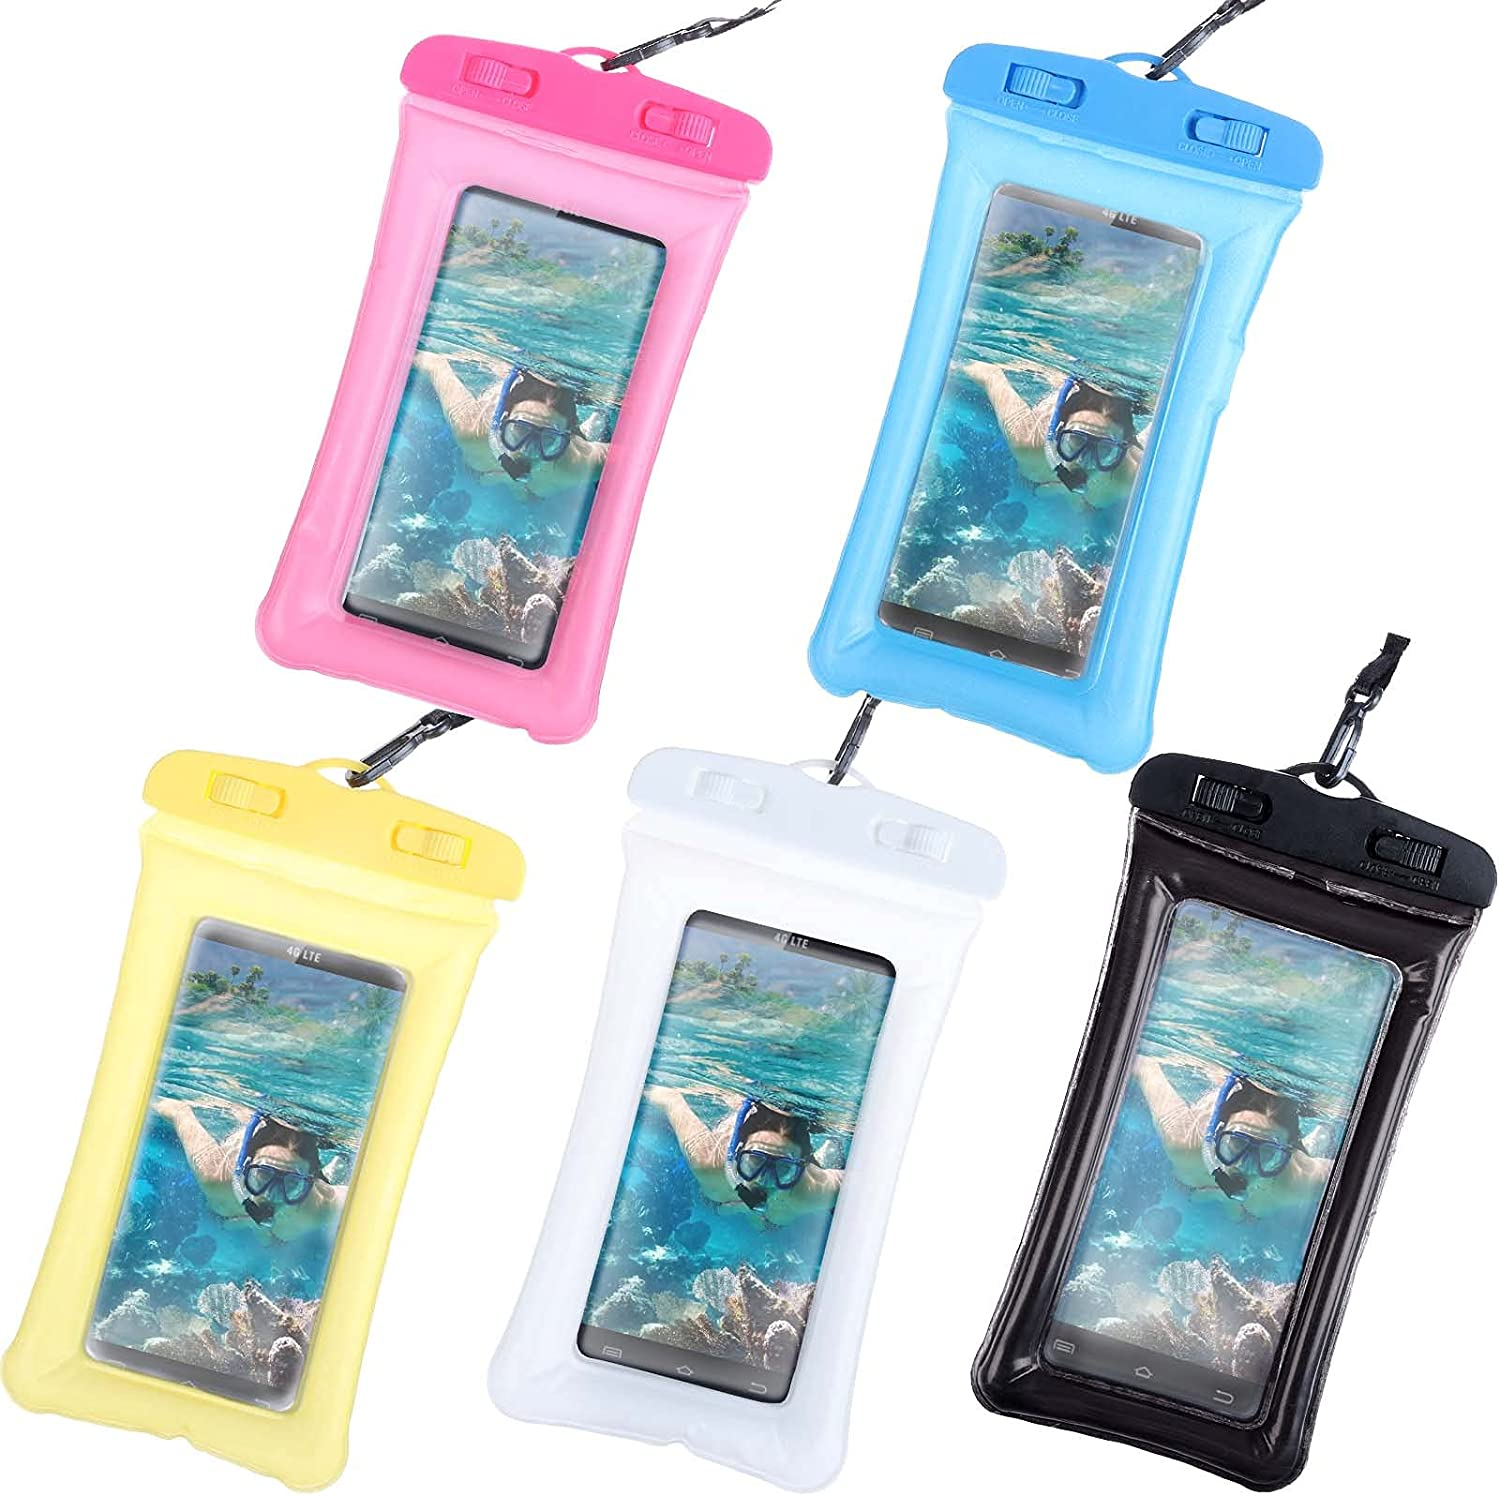 5 Pack Waterproof Case Universal Waterproof Pouch Cellphone Dry Bag Underwater Case Compatible for iPhone 12/12 Pro/11/11 Pro/SE/Xs Max/XR/8P/7 Galaxy up to 6.2